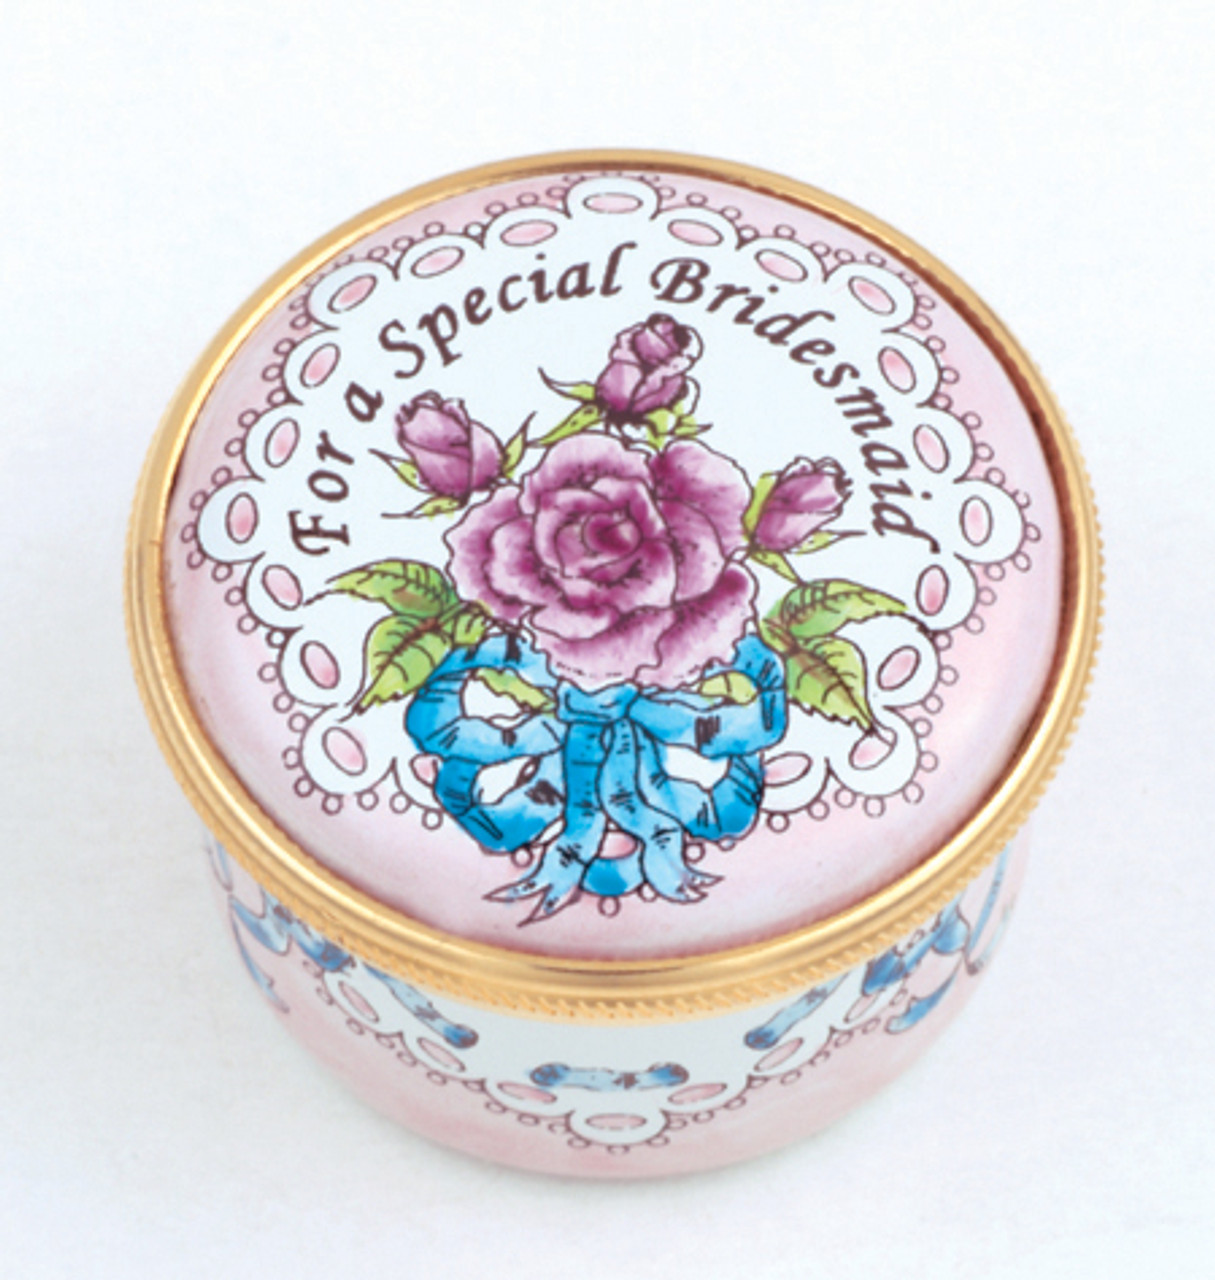 Staffordshire For a Special Bridesmaid (04-194)